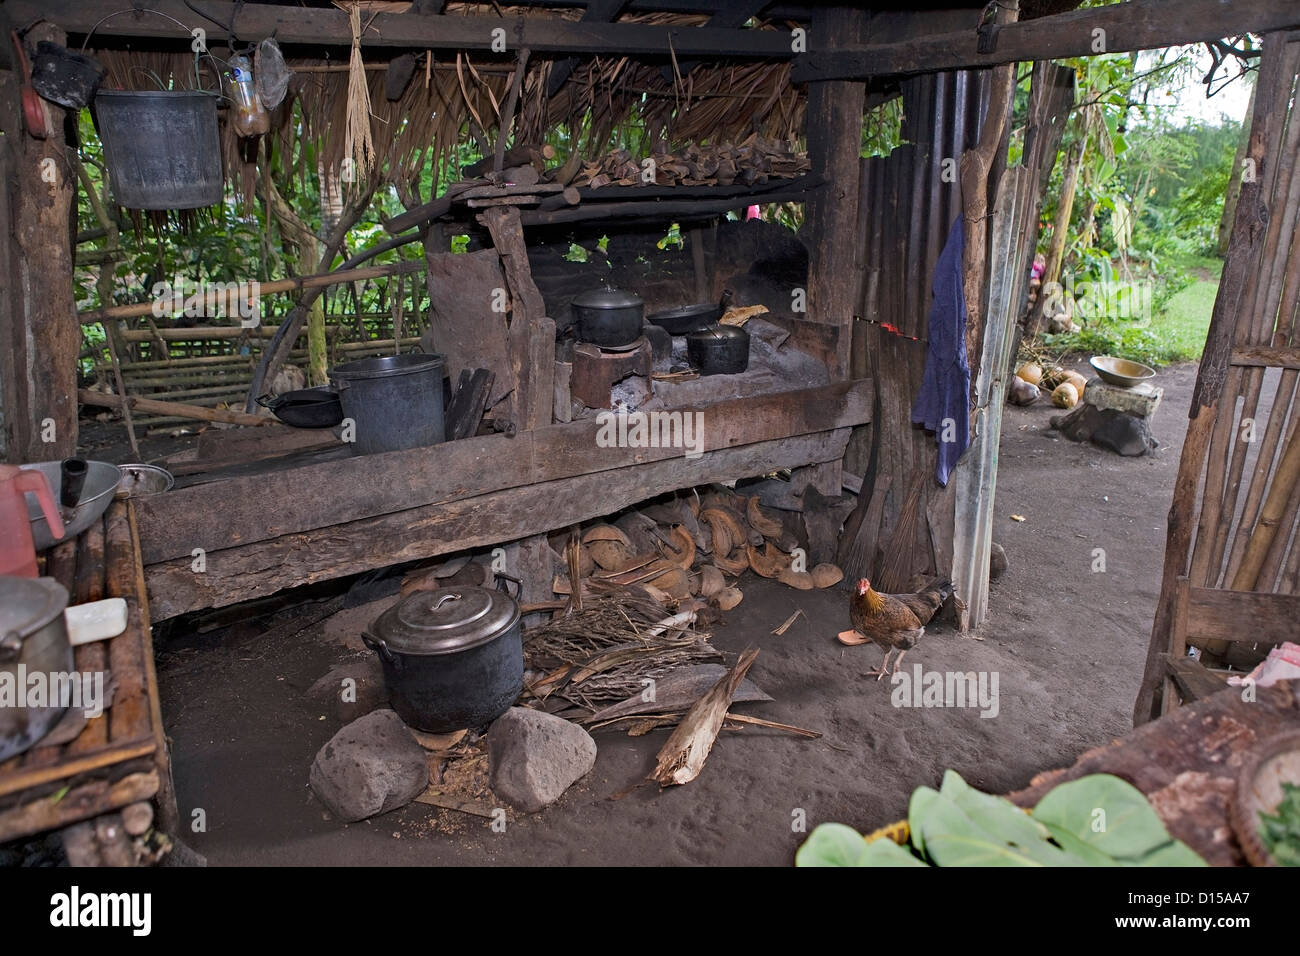 Learn tips for maximizing the efficiency of your kitchen, no matter its size. Philippine Dirty Kitchen Stock Photo: 52363647 - Alamy